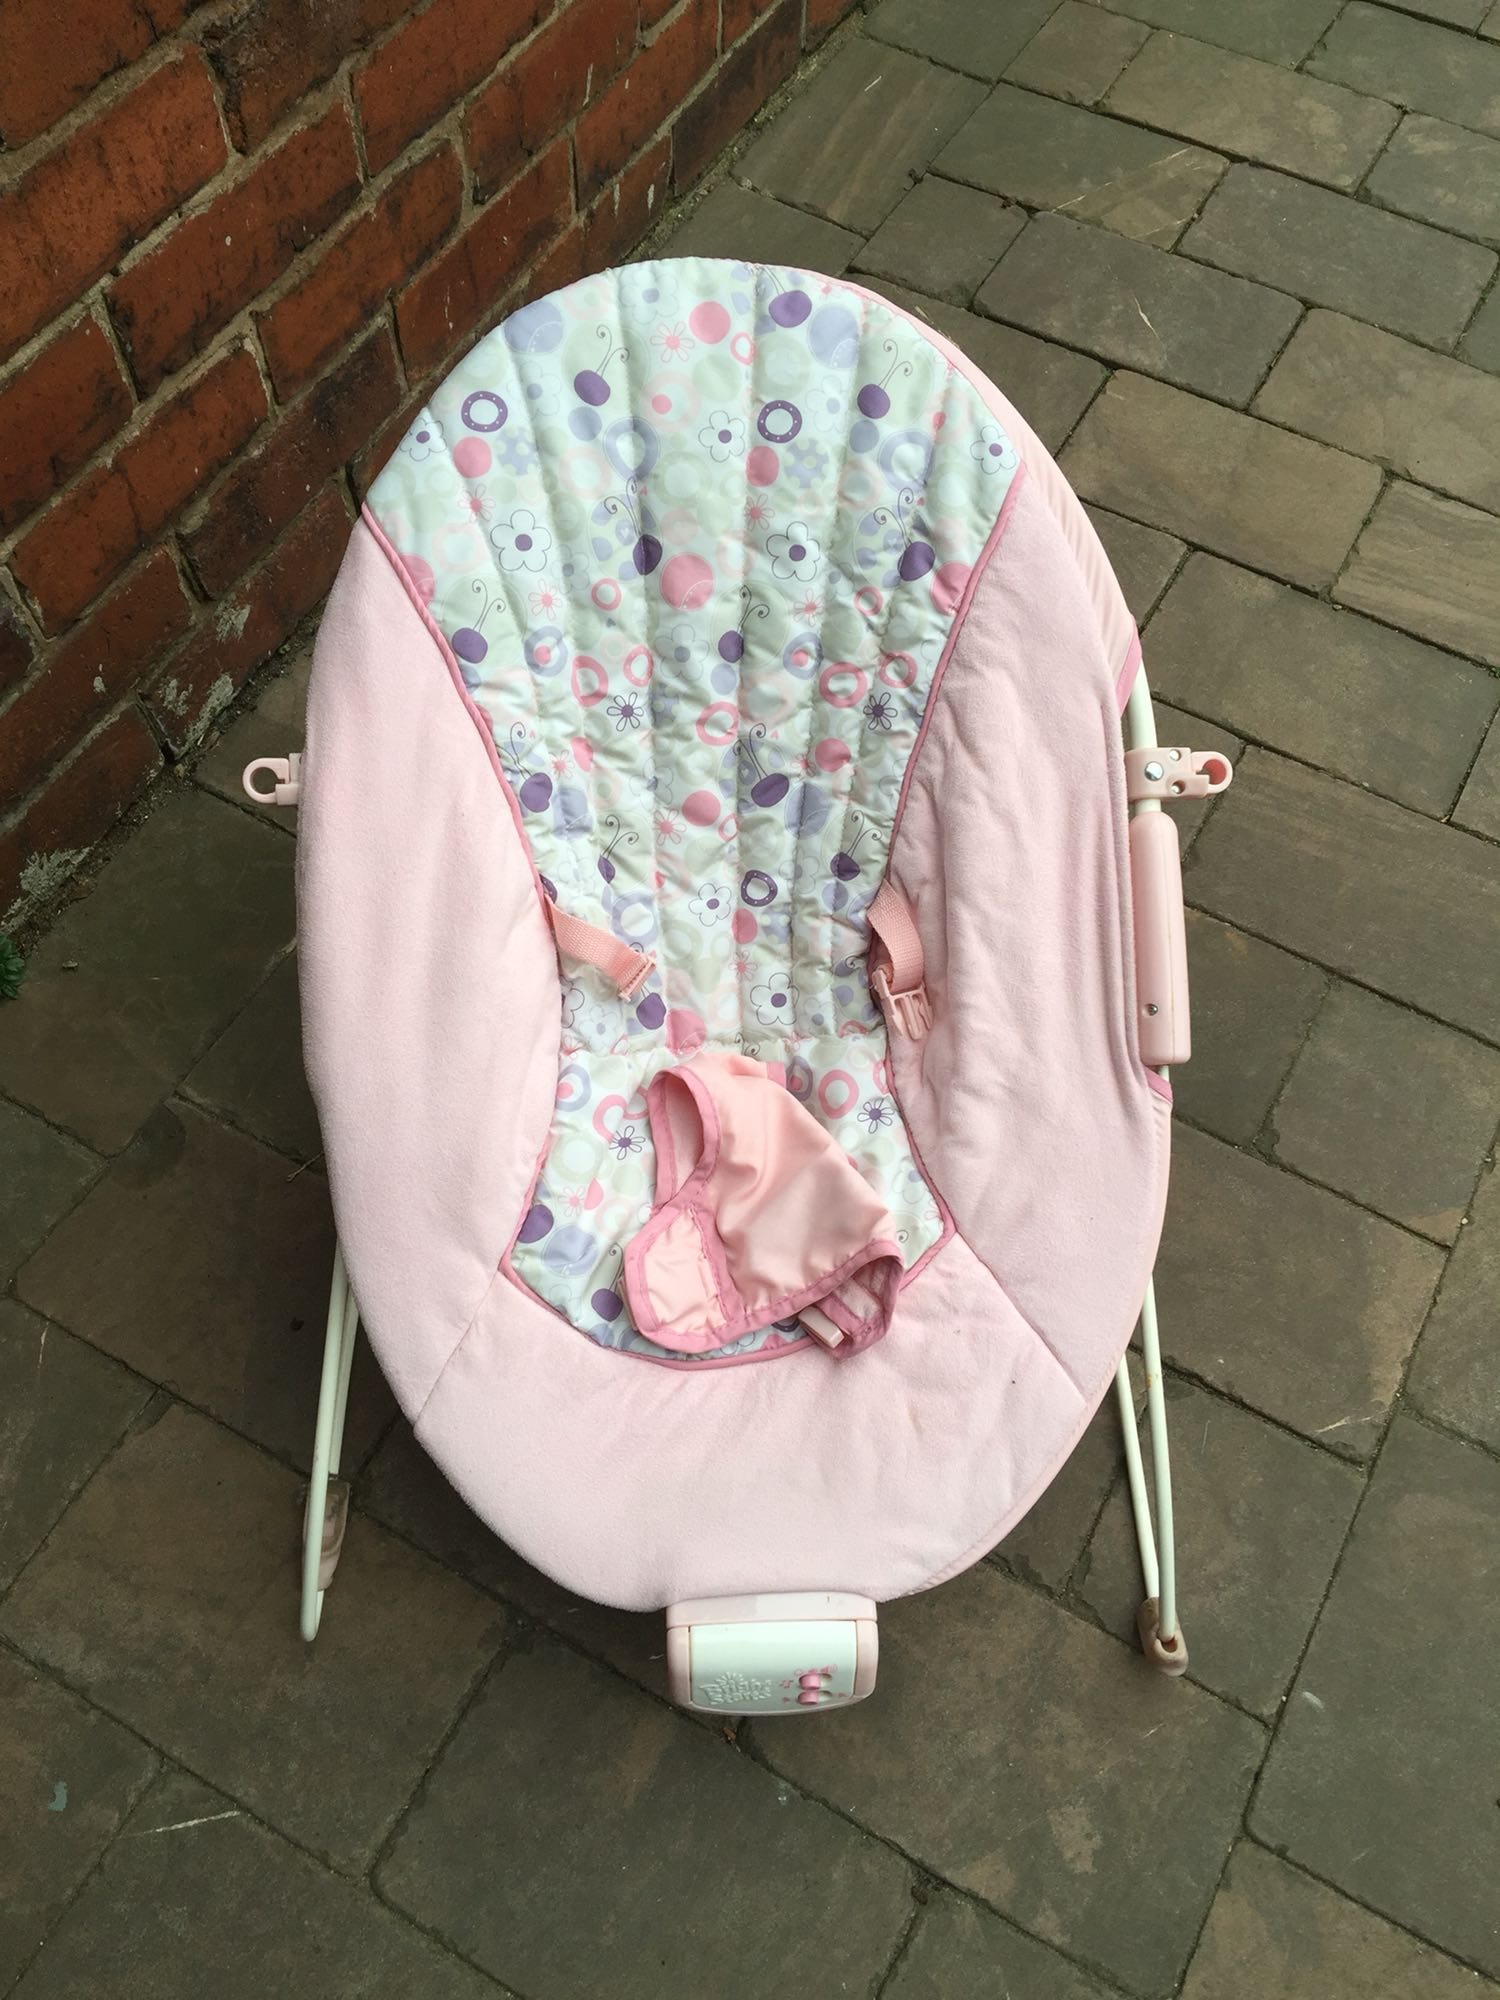 baby chair that vibrates leather egg replica bouncer local classifieds in bolton greater manchester plays music and nature sounds has a buckle to strap them both my little girl boy were very happy here give you time have